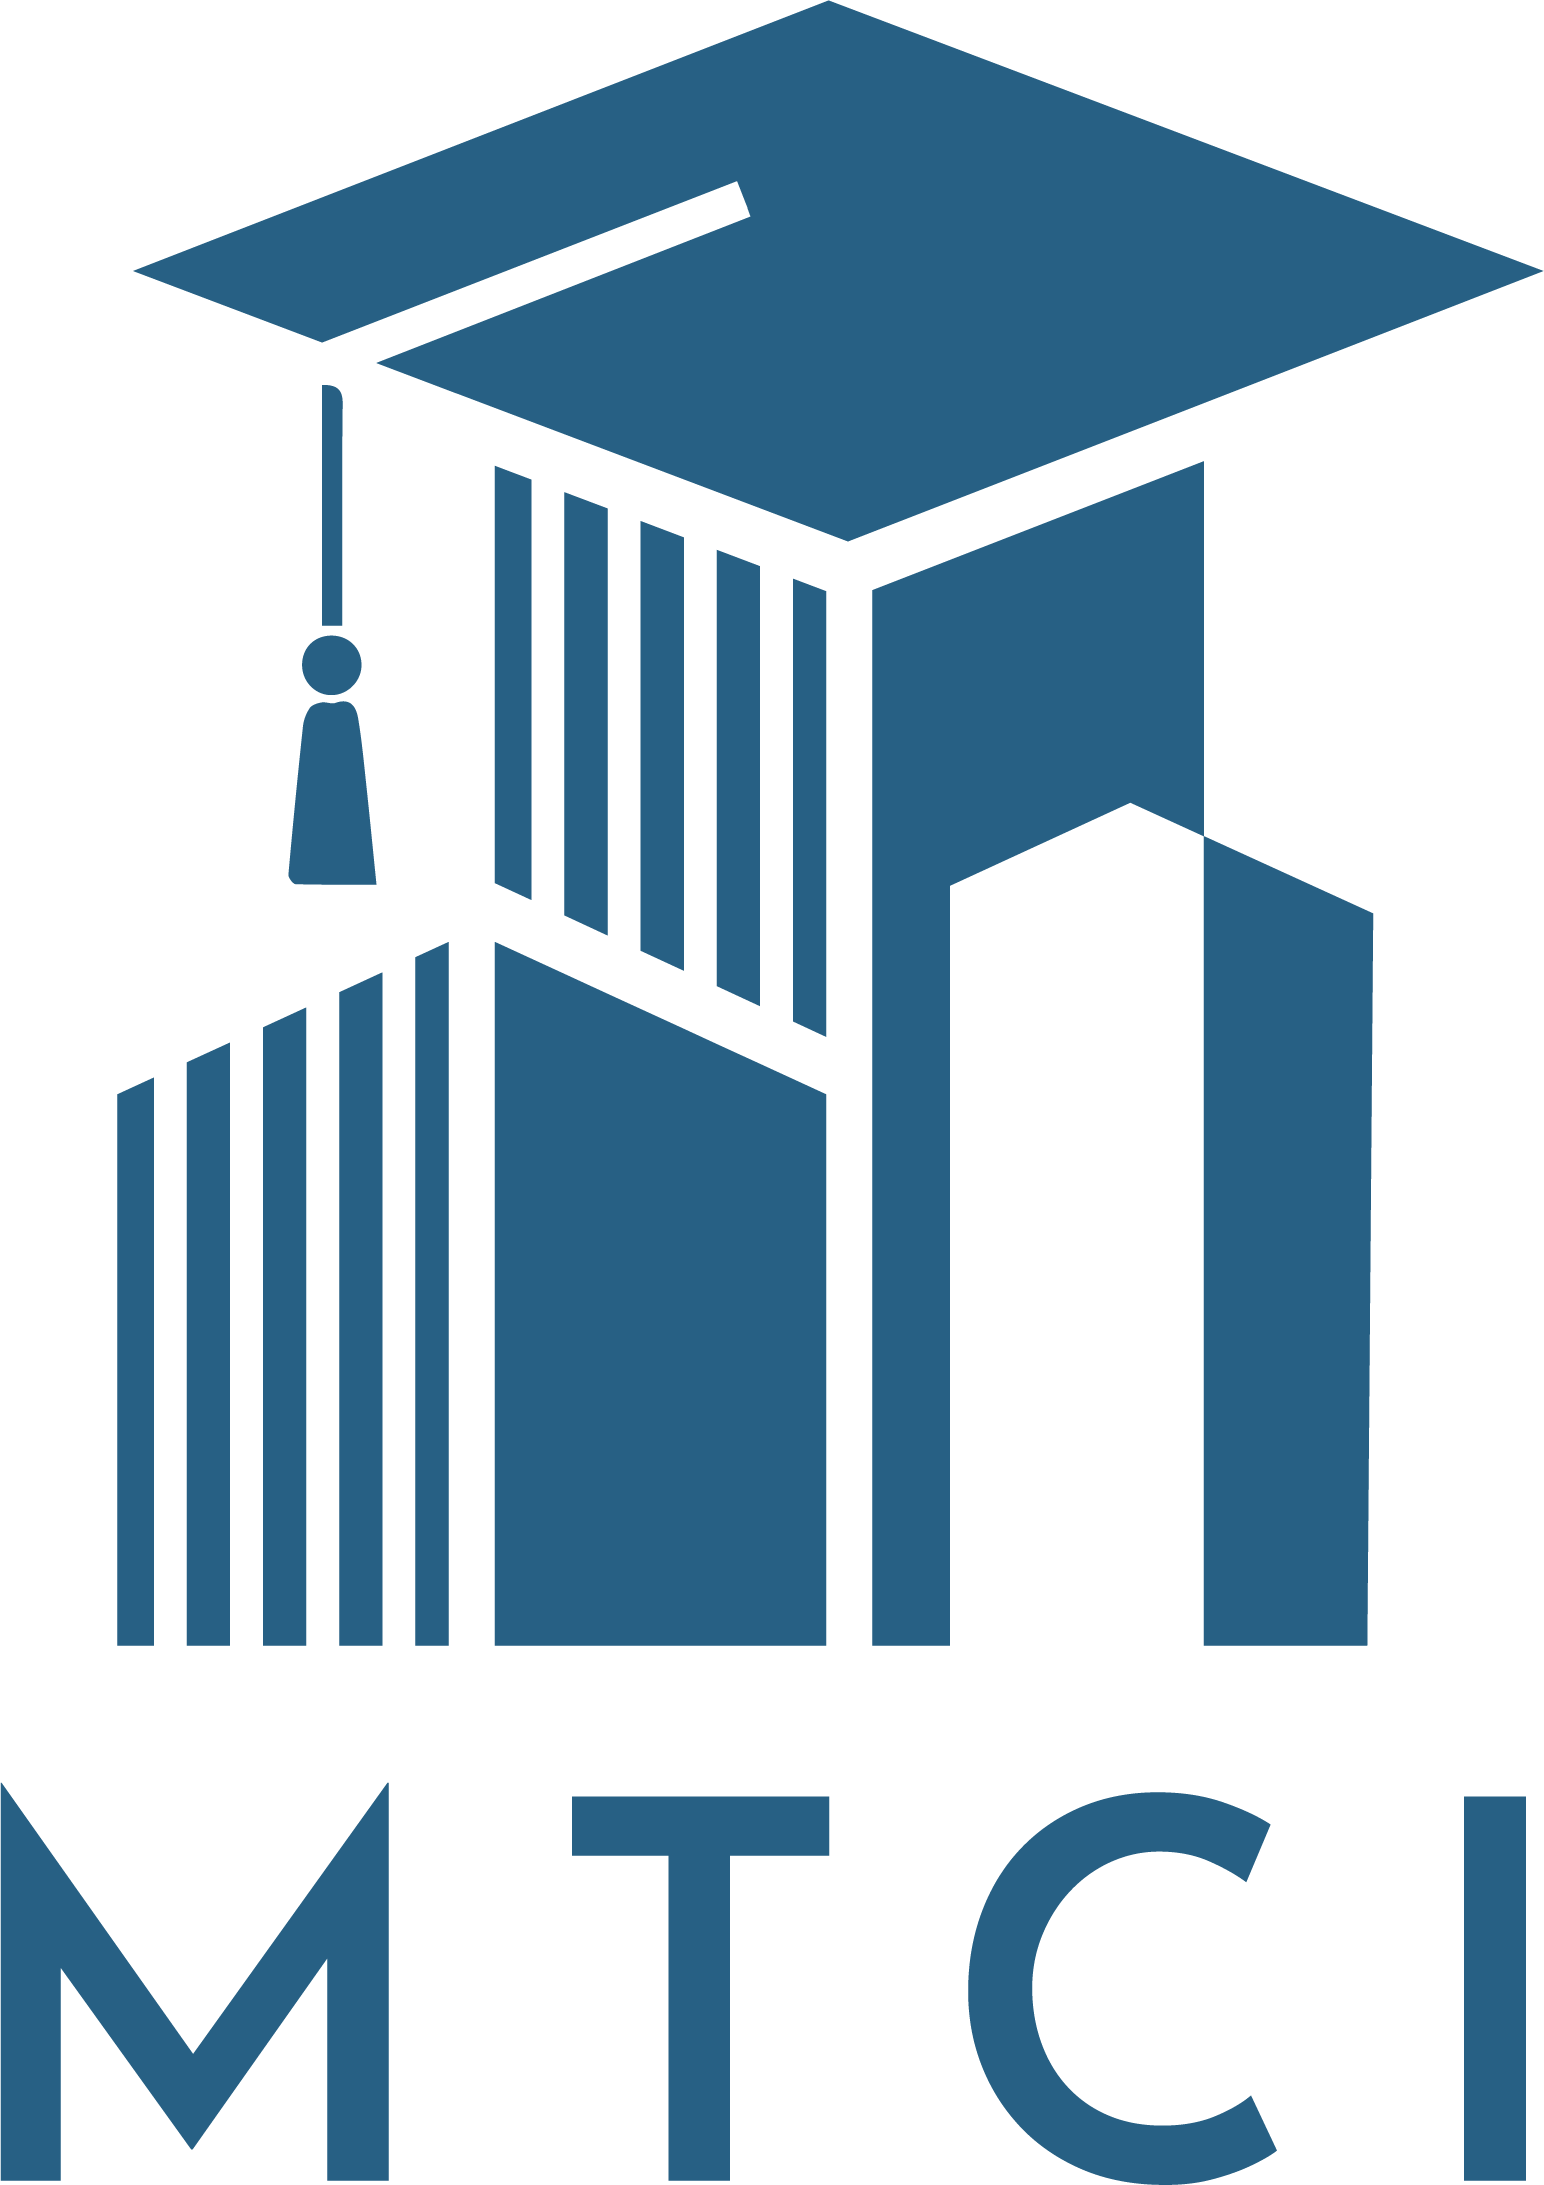 Metropolitan Technical Career Institute